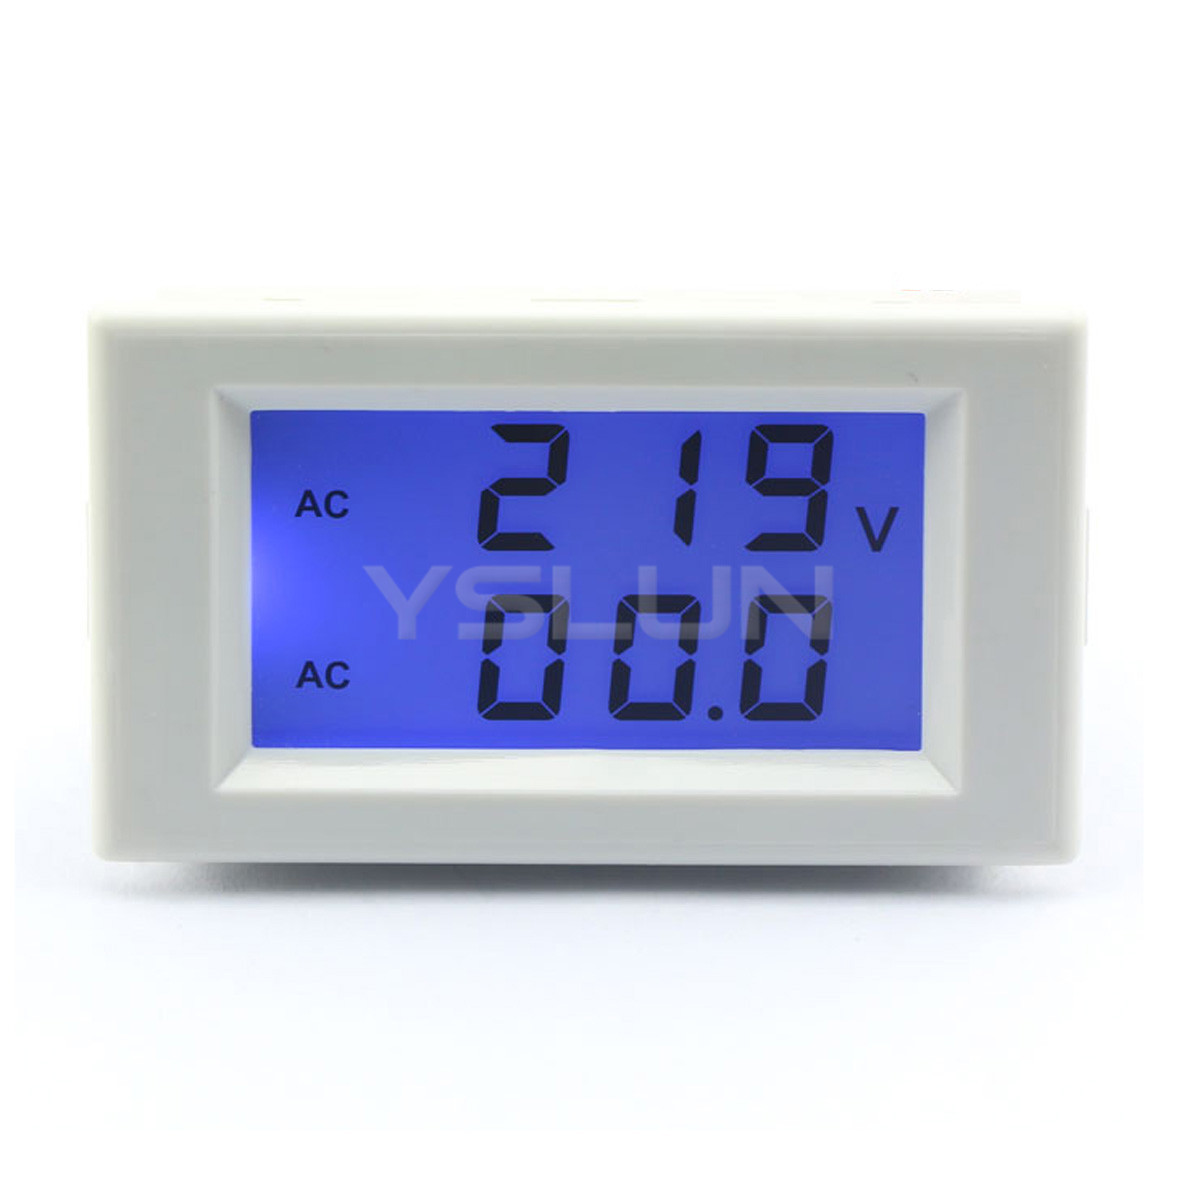 2in1 volt amp panel meter ac 200 500v 50a digital. Black Bedroom Furniture Sets. Home Design Ideas